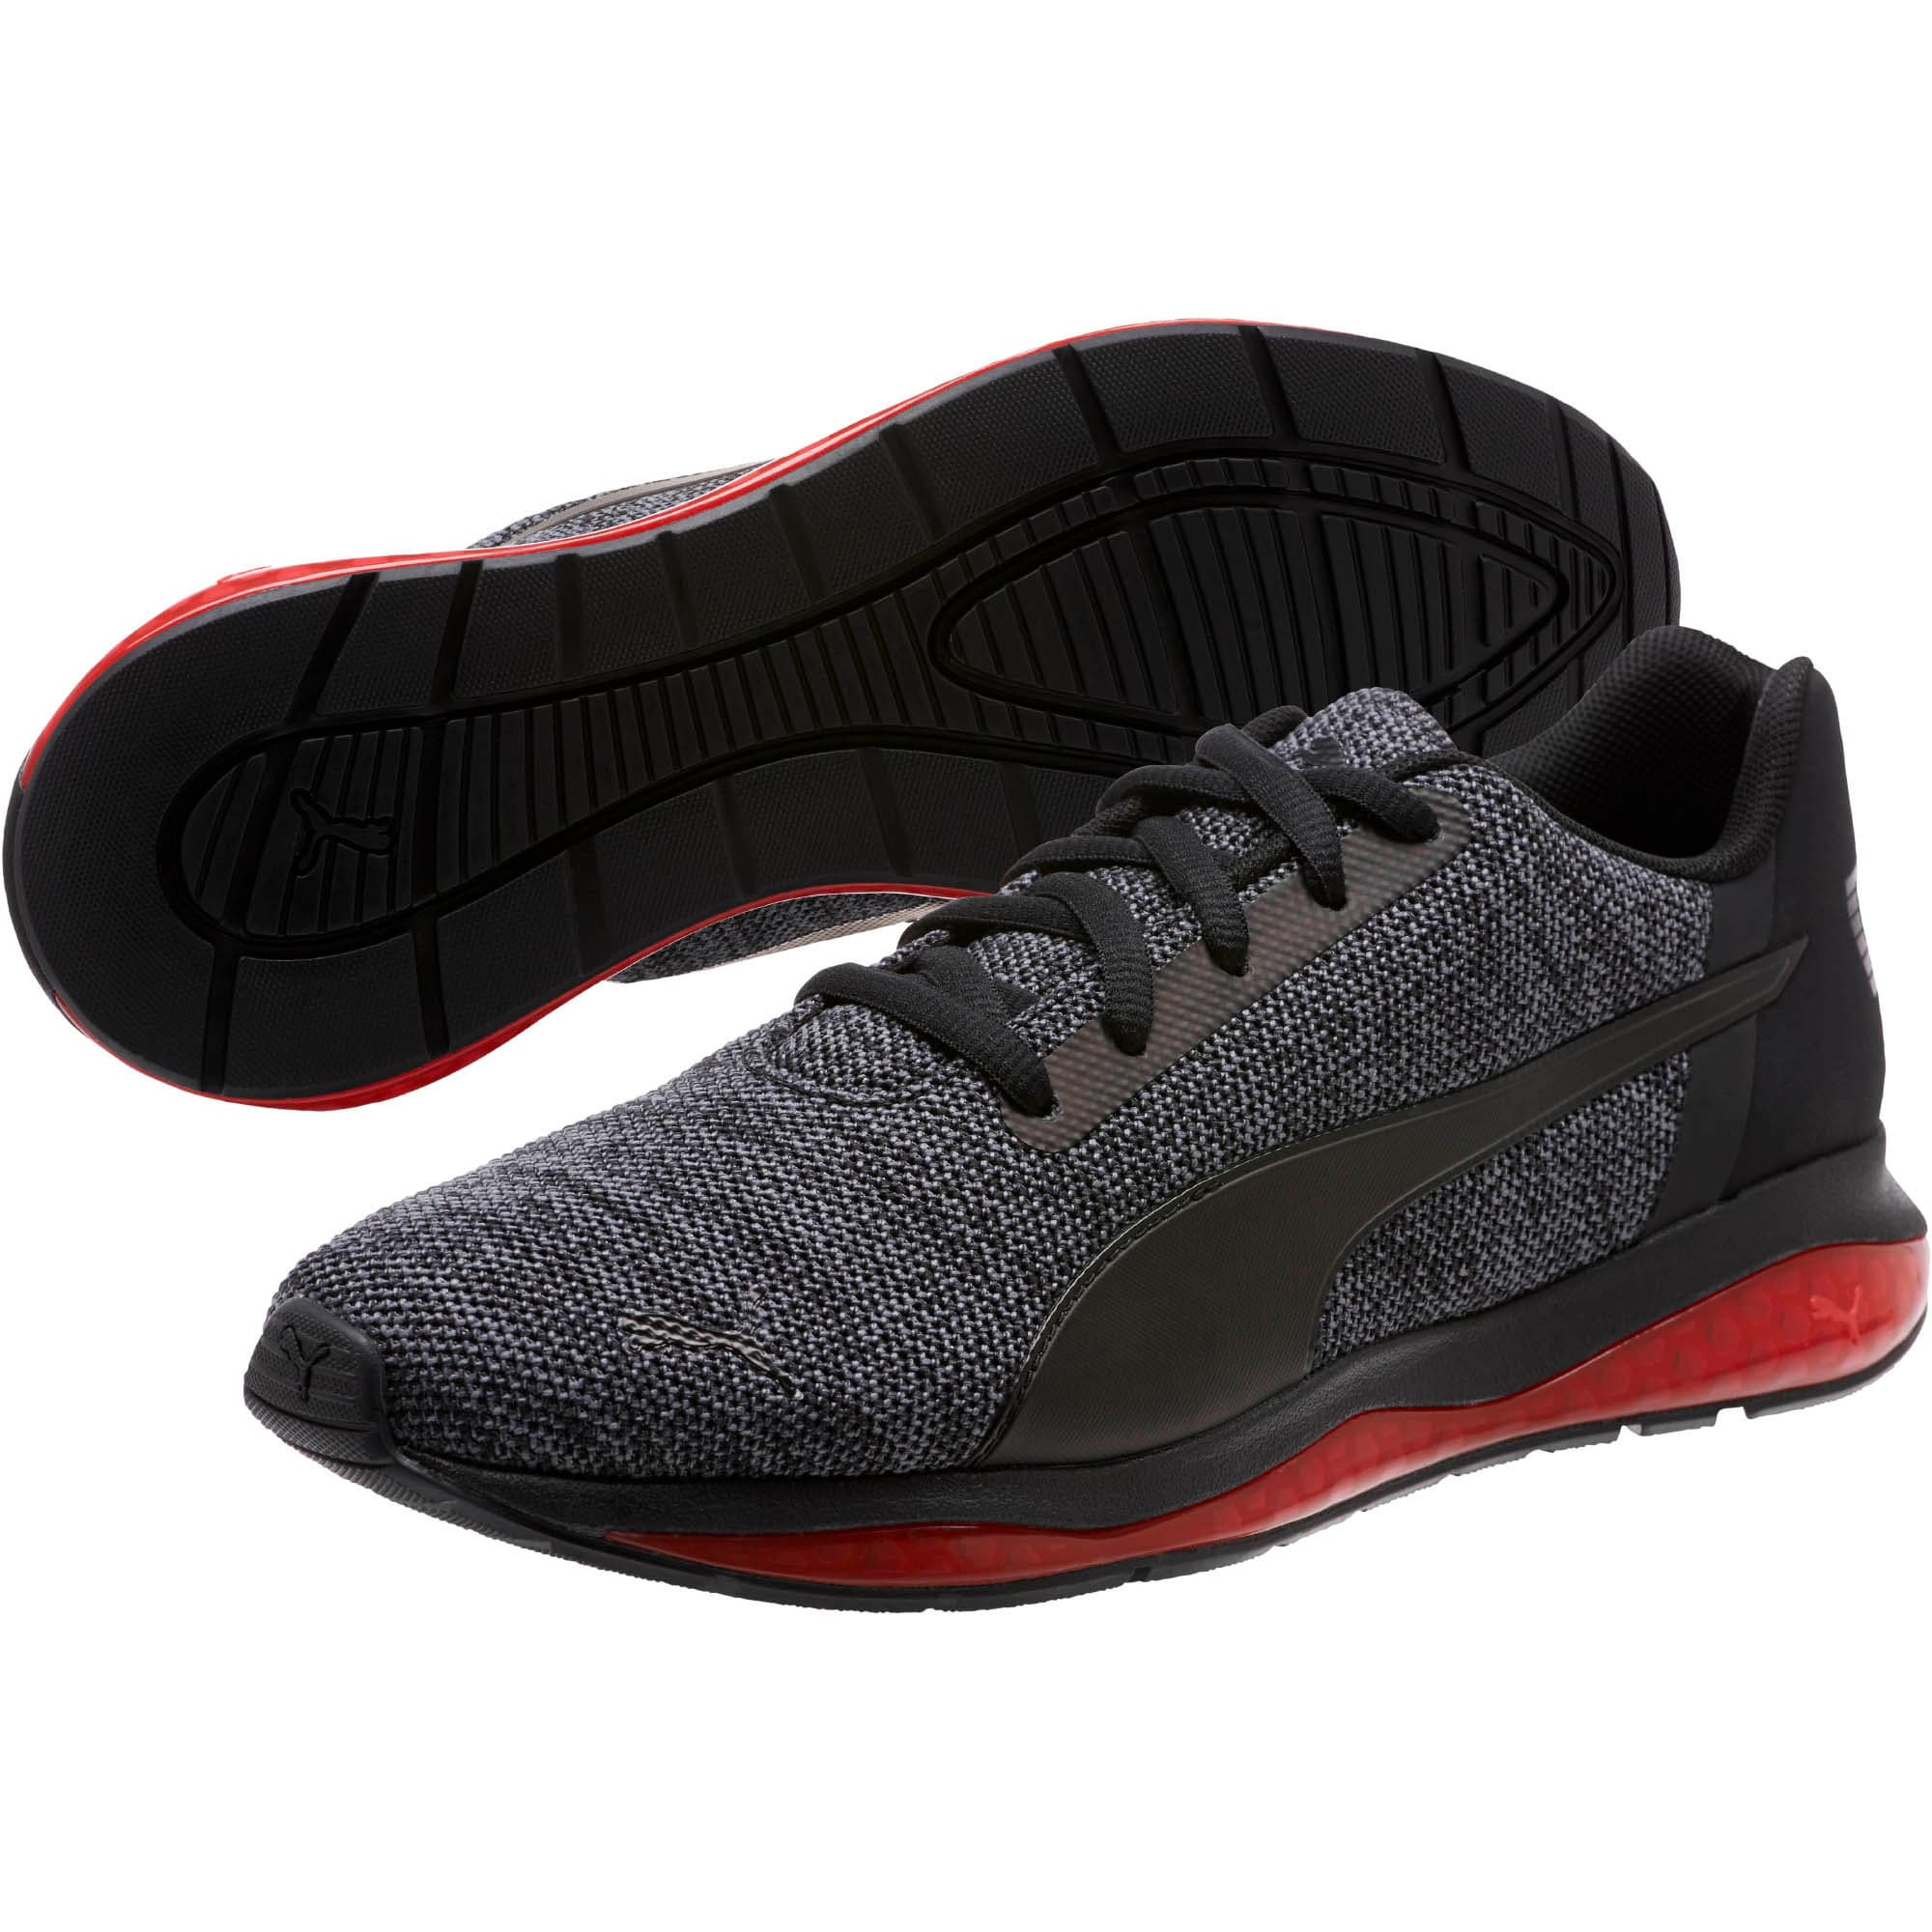 Thumbnail 2 of CELL Ultimate Knit Training Shoes, Pma Blk-QUIET SHDE-Rbbon Red, medium